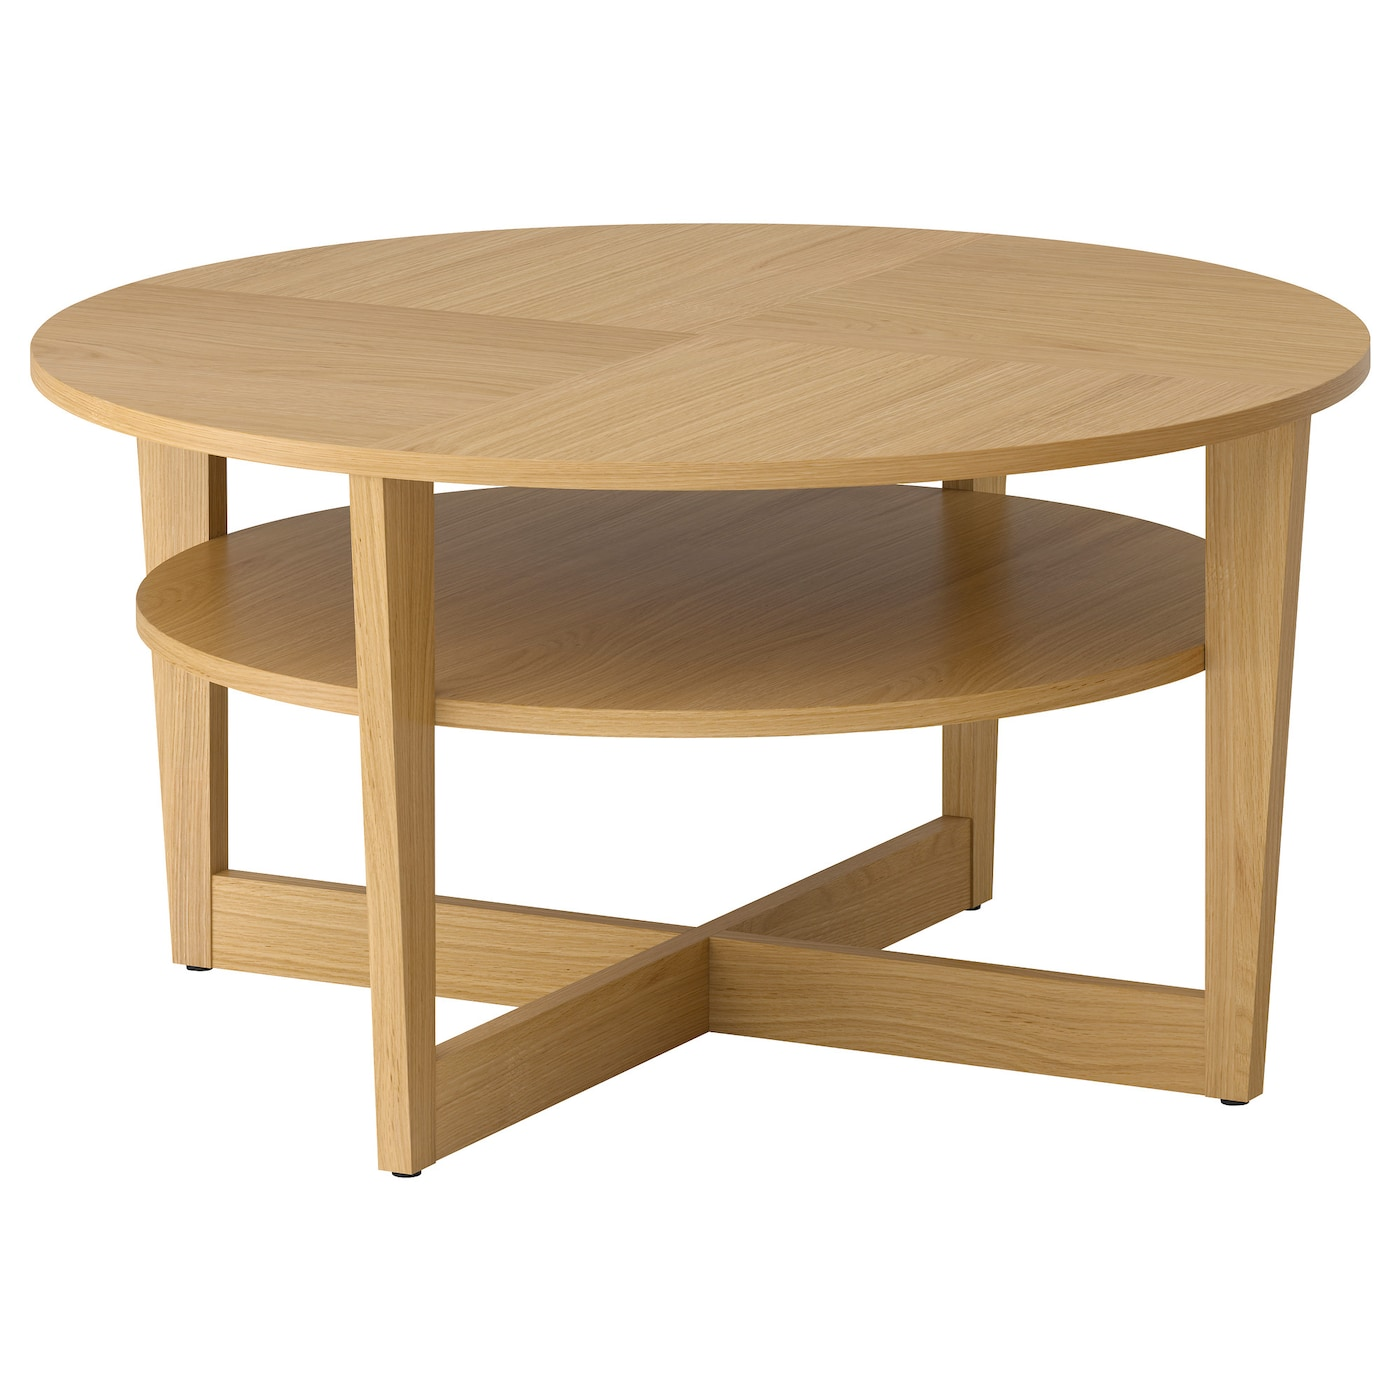 Ikea leksvik coffee table - Ikea Vejmon Coffee Table The Veneered Surface Is Durable Stain Resistant And Easy To Keep